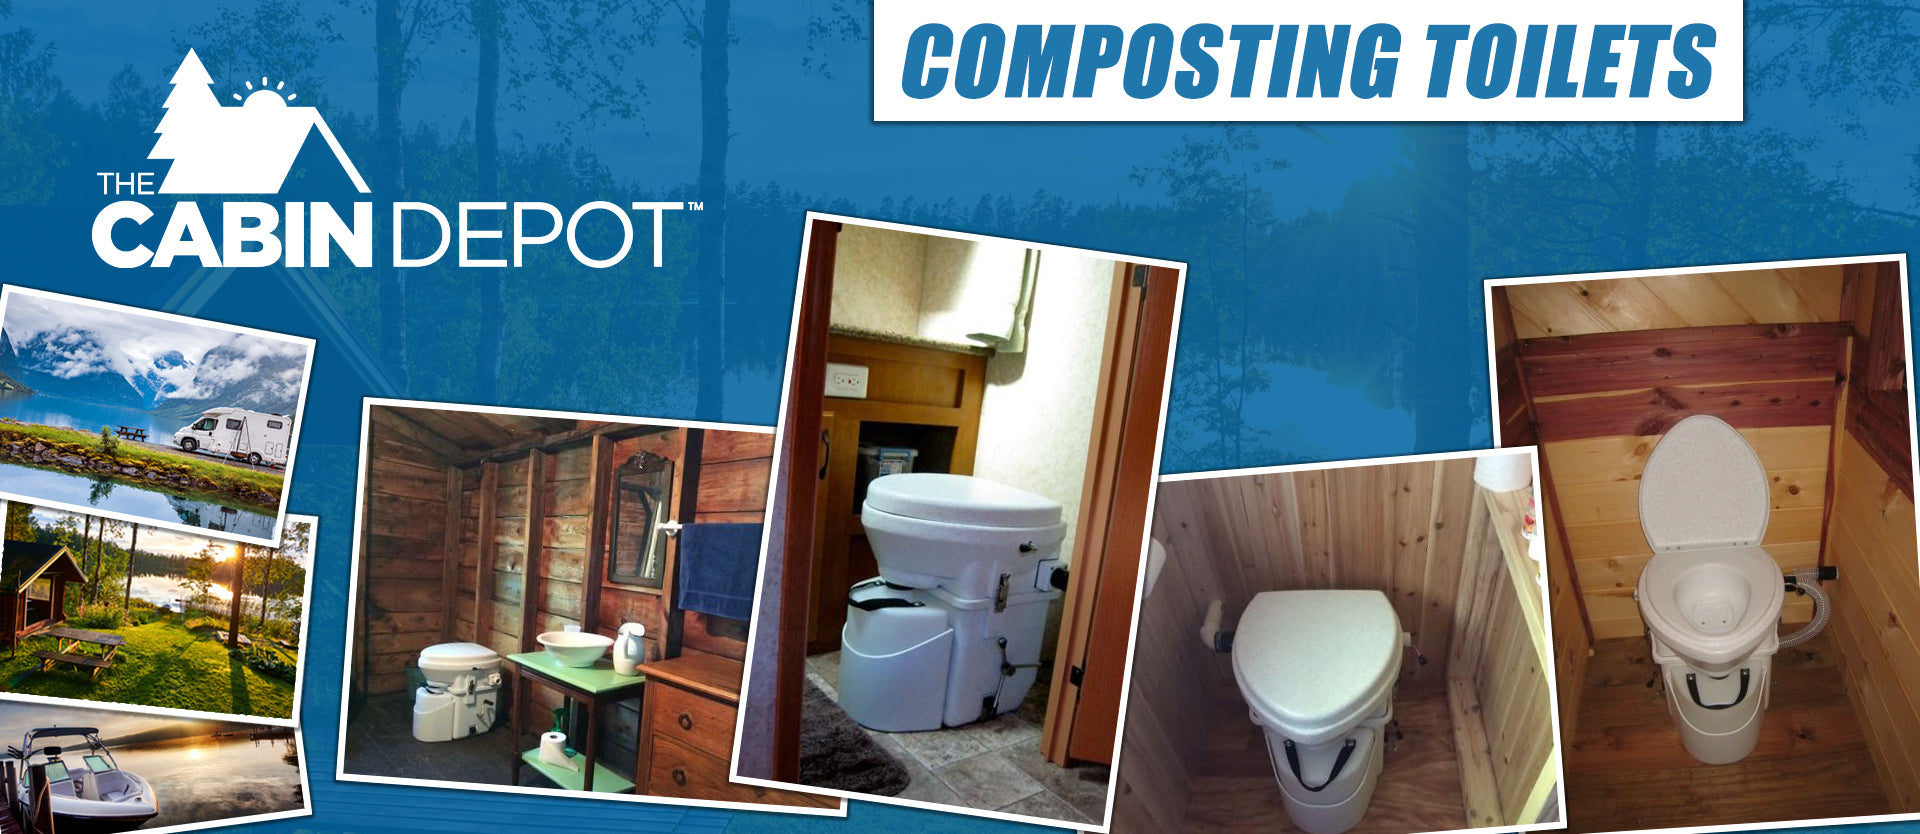 The Cabin Depot ™ Composting Toilets Nature's Head Cinderella